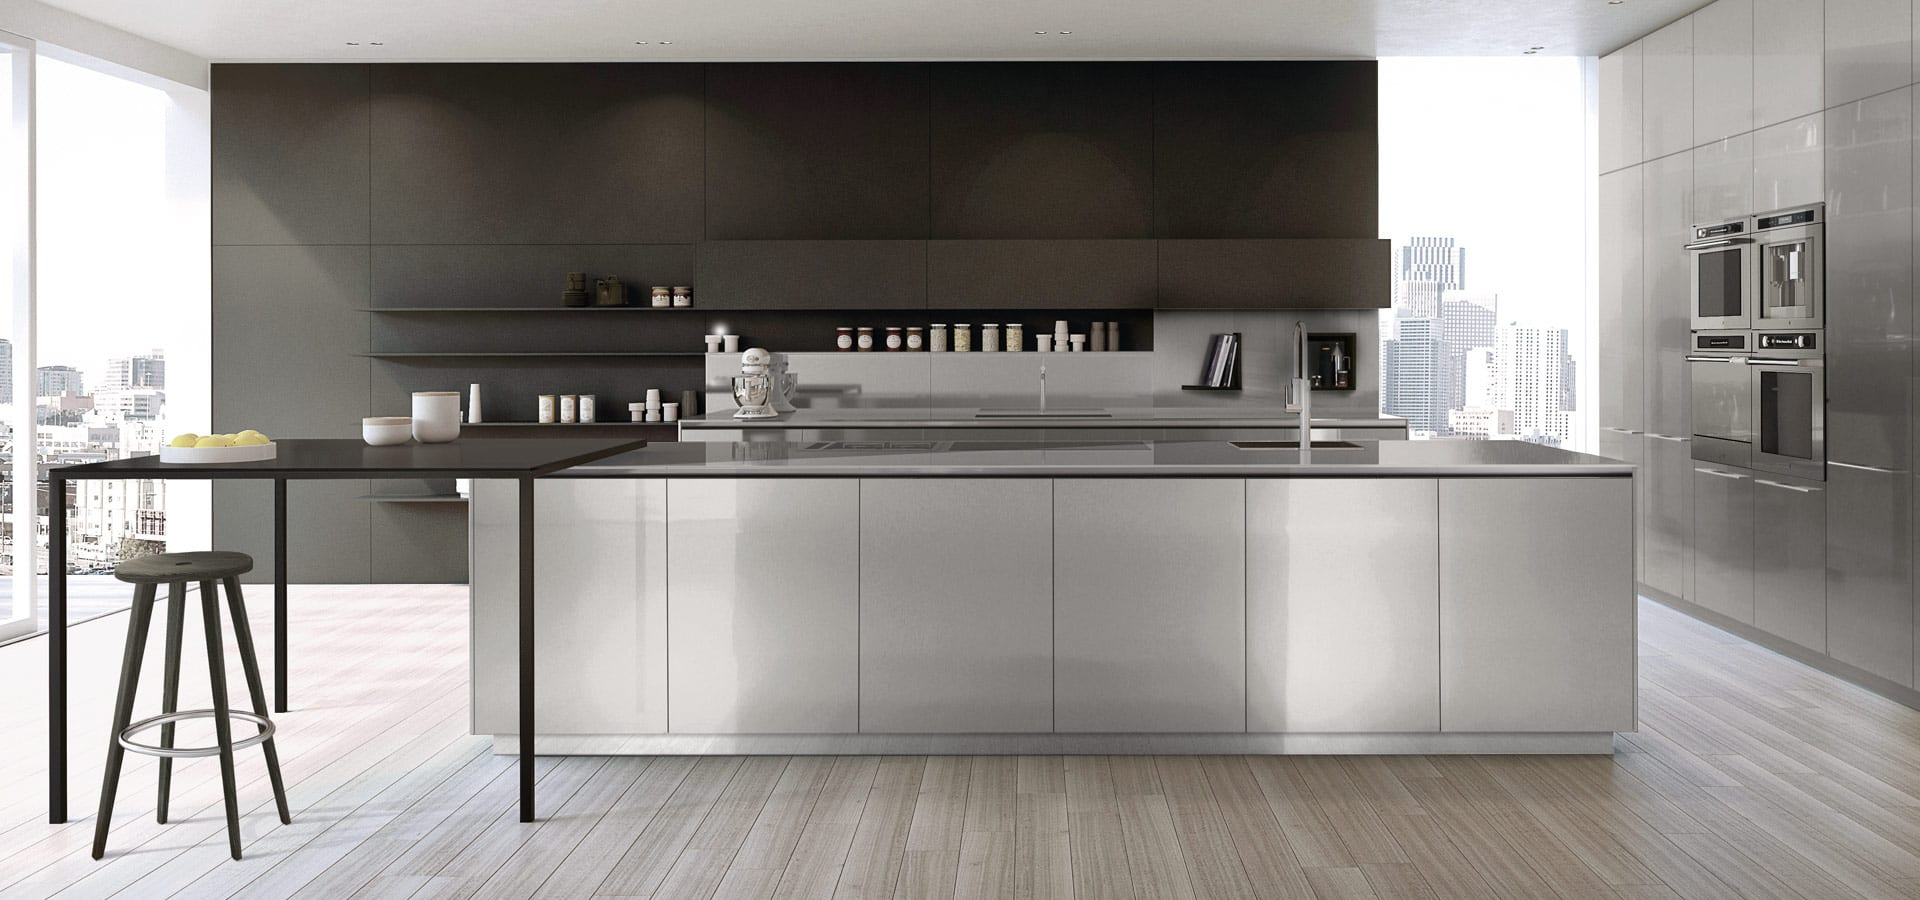 Modern european stainless steel kitchen with large island, wood veneer cabinets